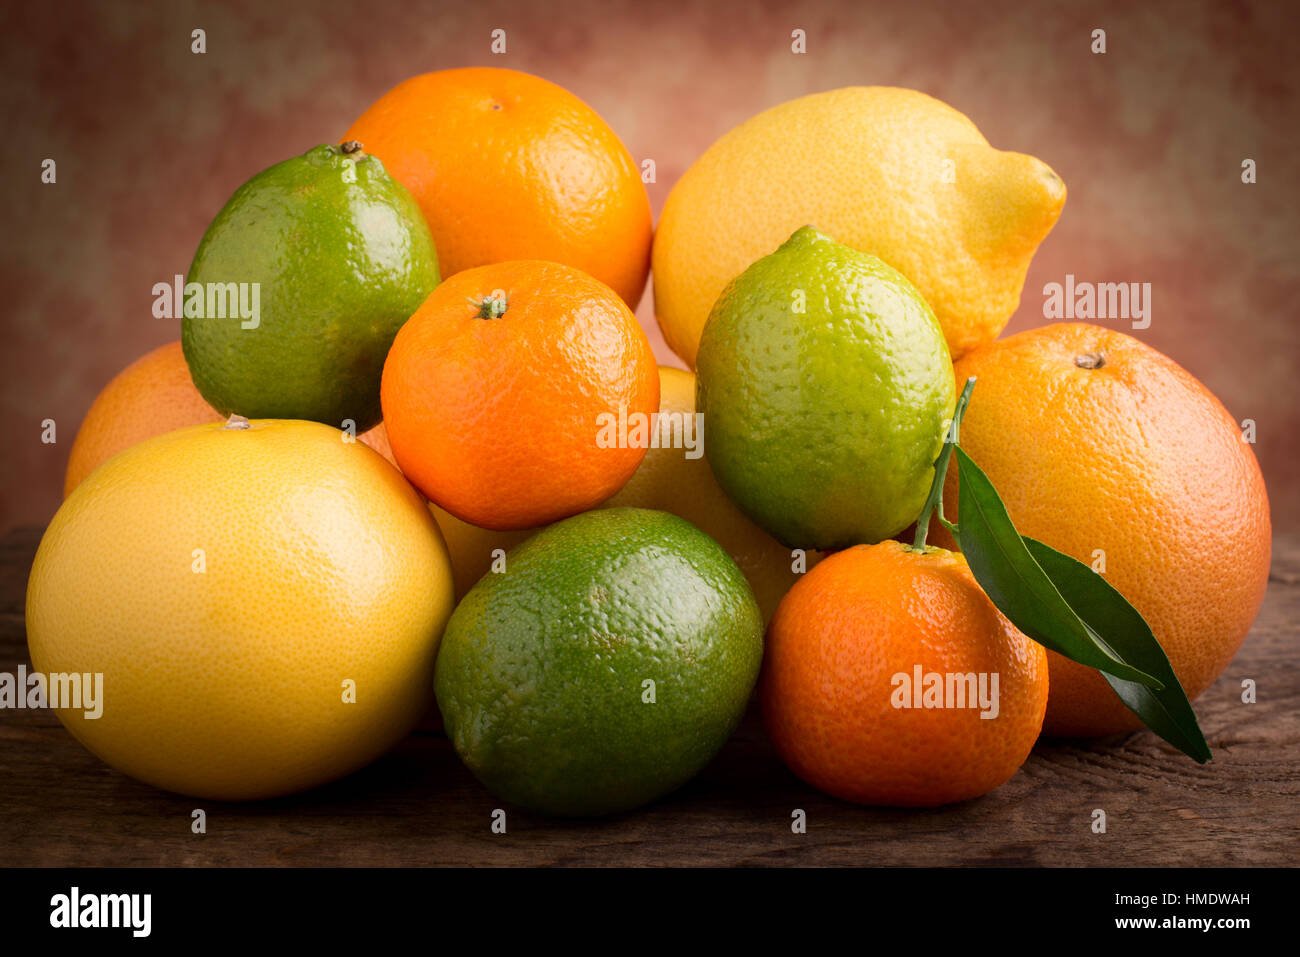 citrus fruits on wooden background - Stock Image